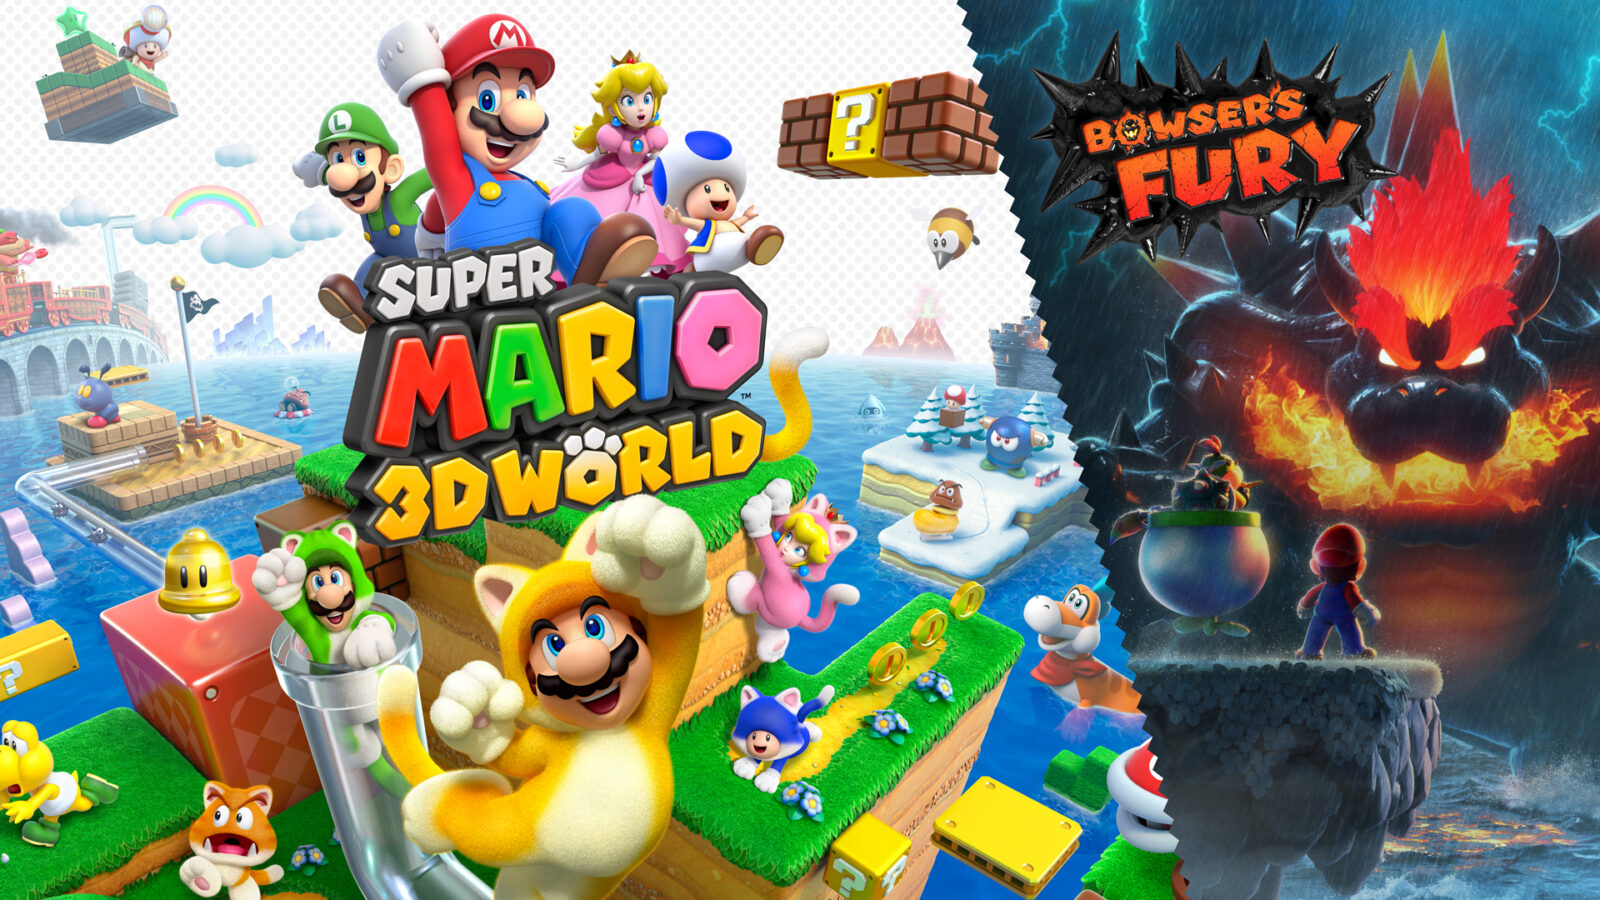 best-games-2021-so-far-mario-3d-world-bowsers-fury-switch